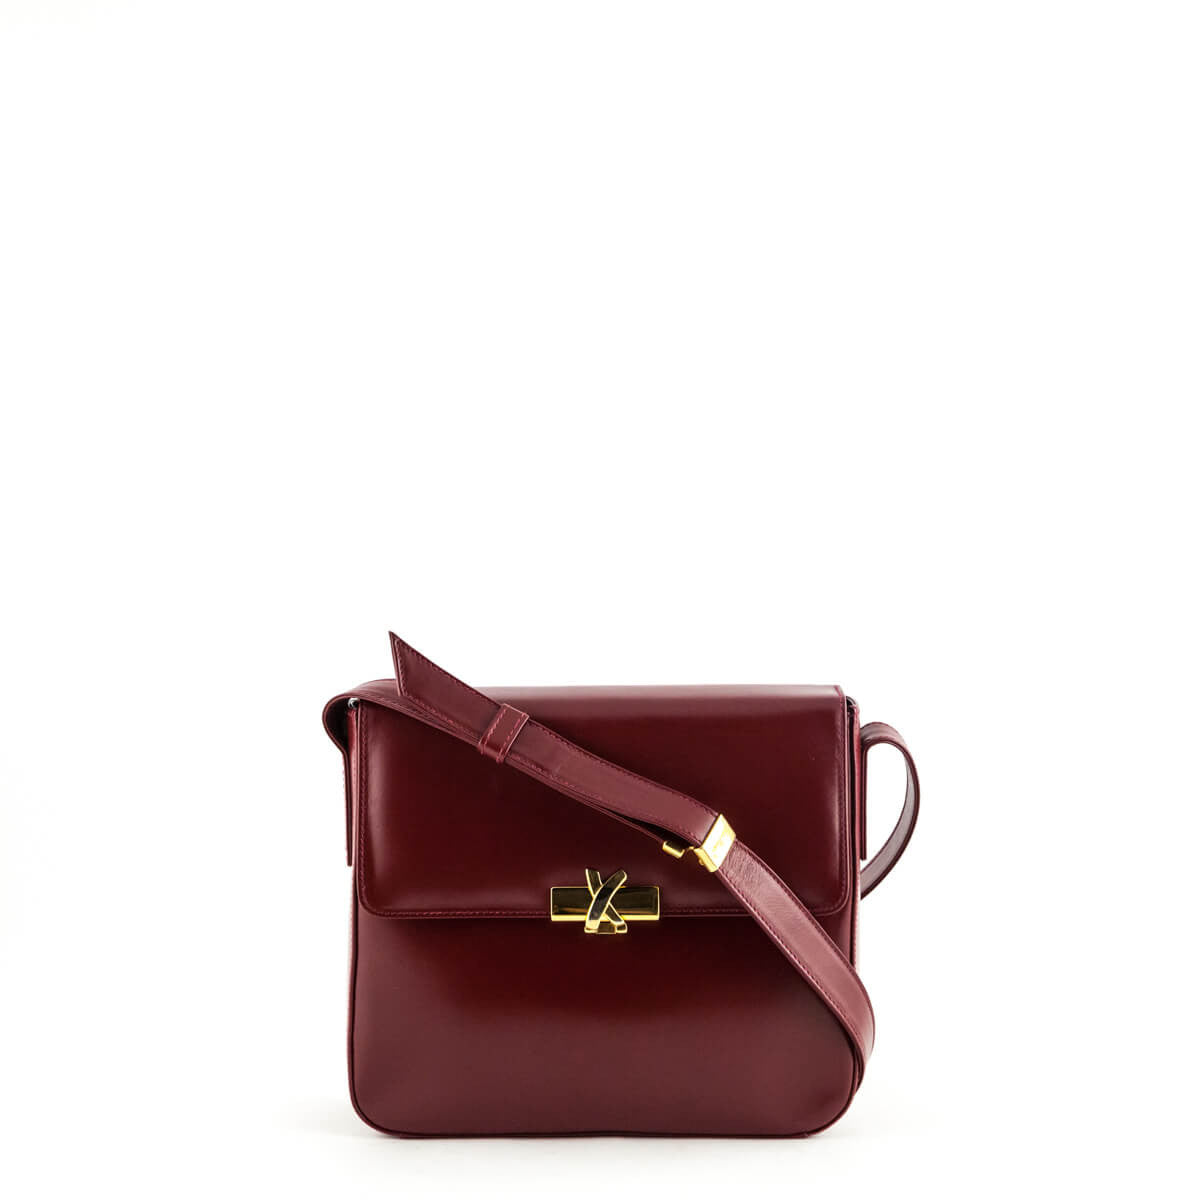 3380781a1 Paloma Picasso Cranberry Structured Square Bag - LOVE that BAG - Preowned  Authentic Designer Handbags ...